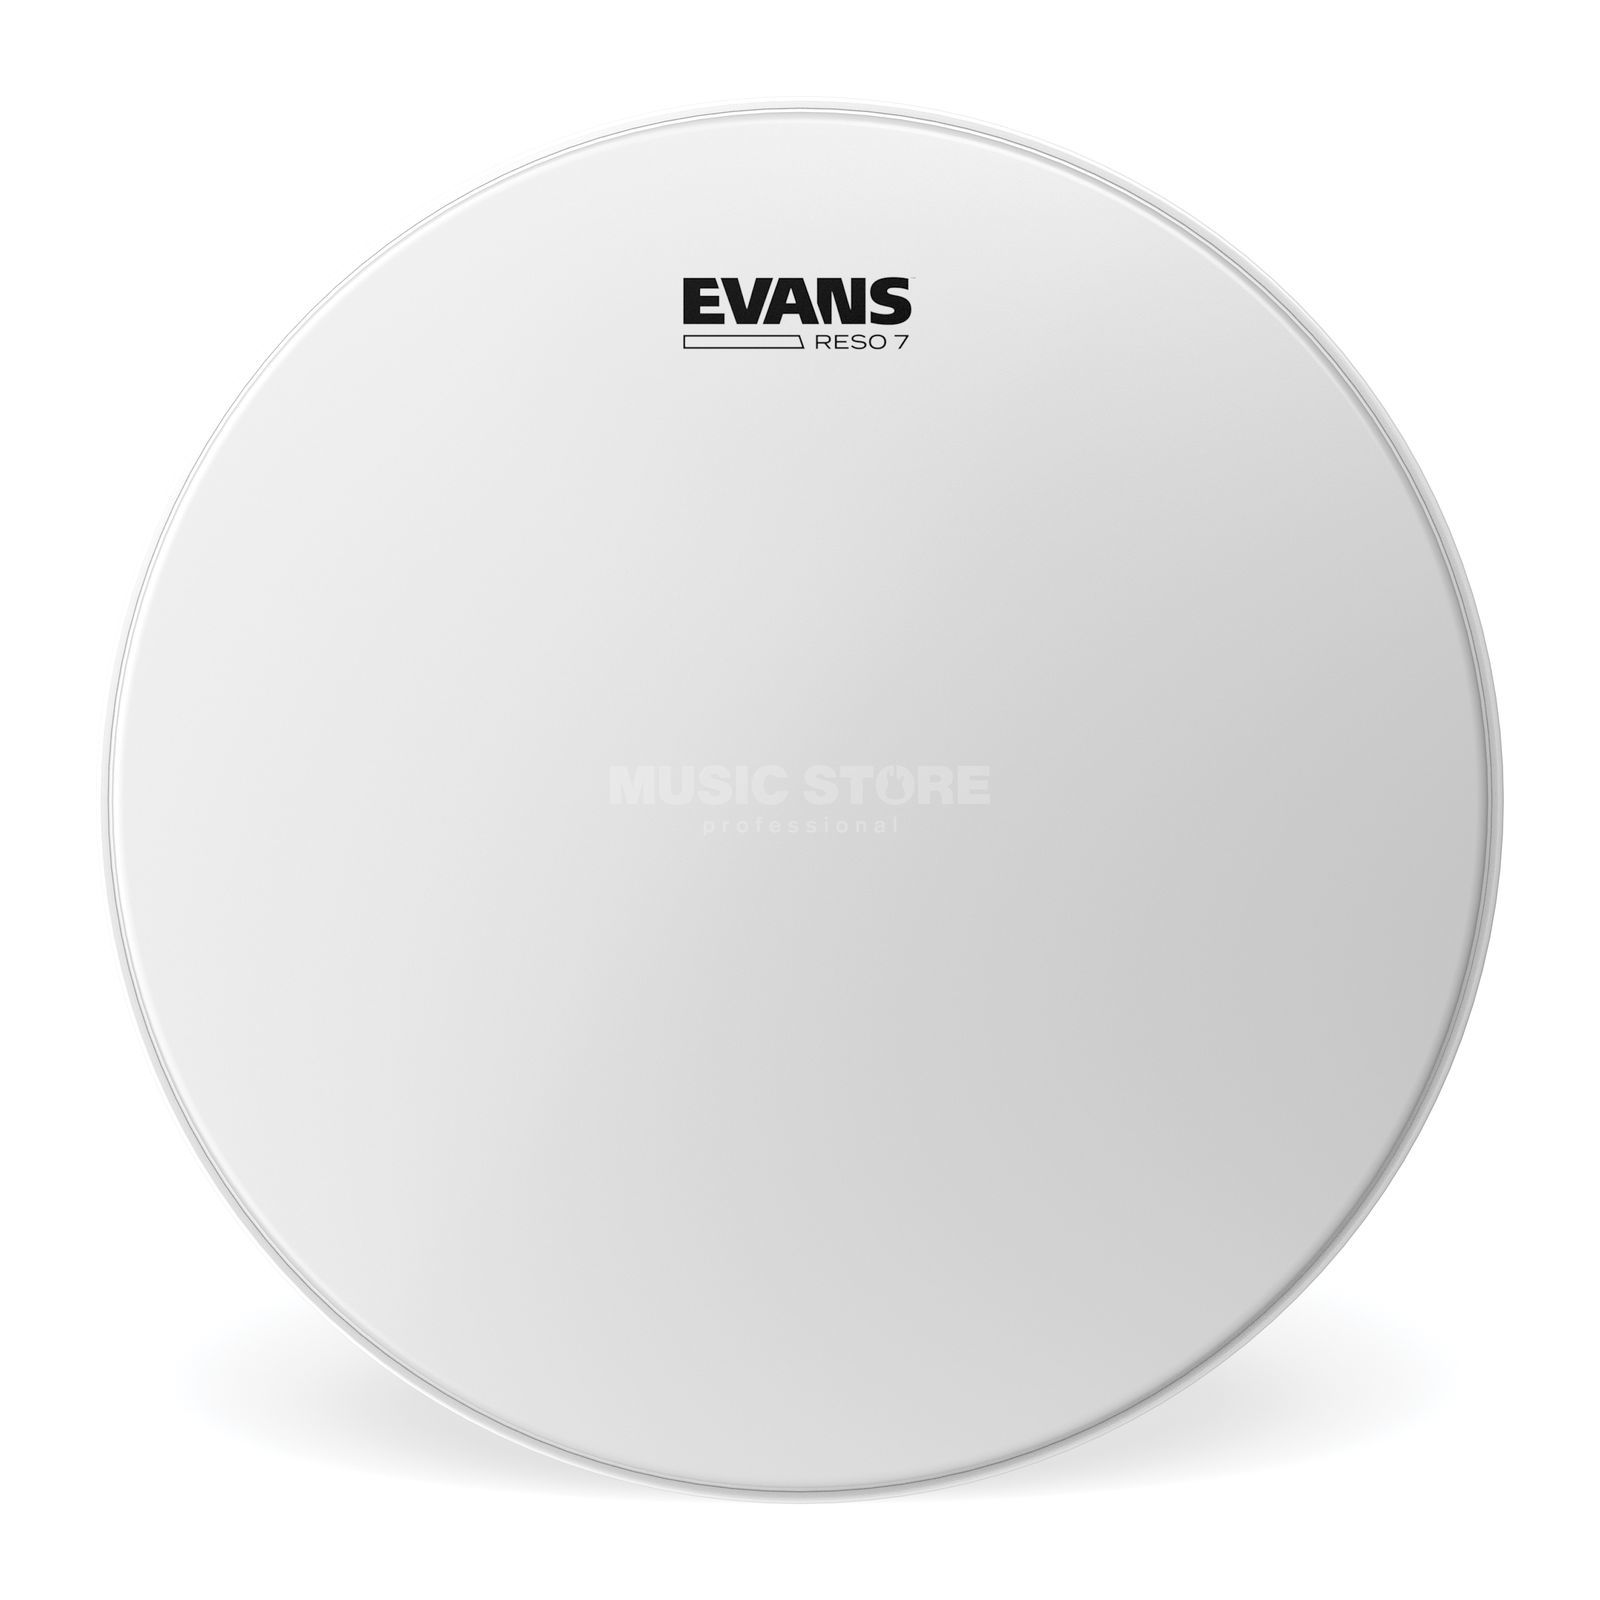 "Evans Reso 7 Coated 6"", B06RES7, Tom Reso Product Image"